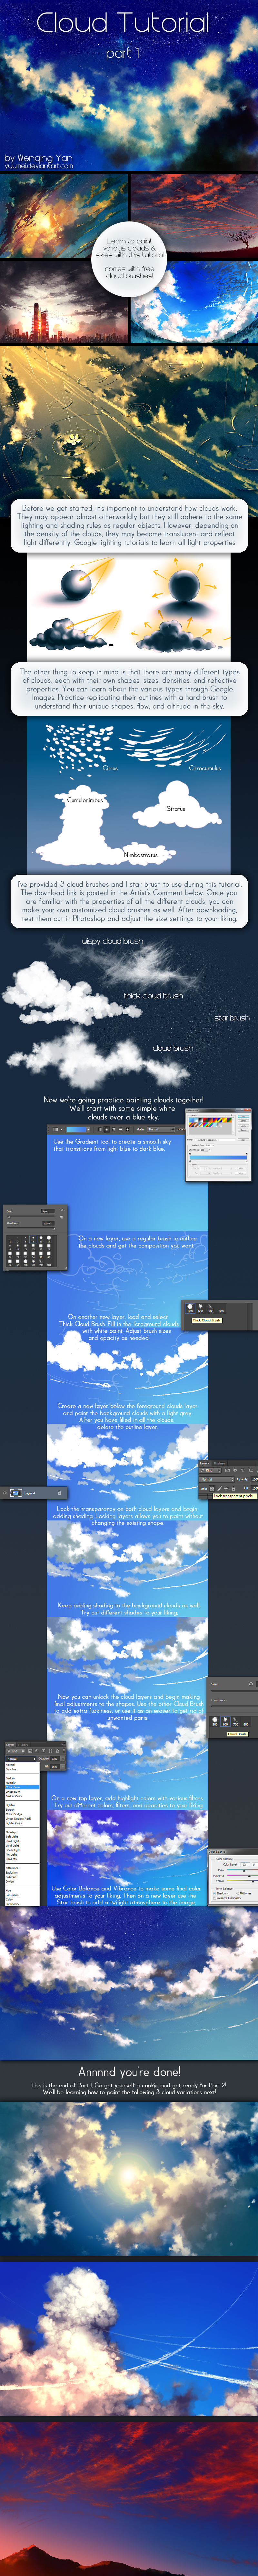 Cloud Tutorial Part 1 by yuumei